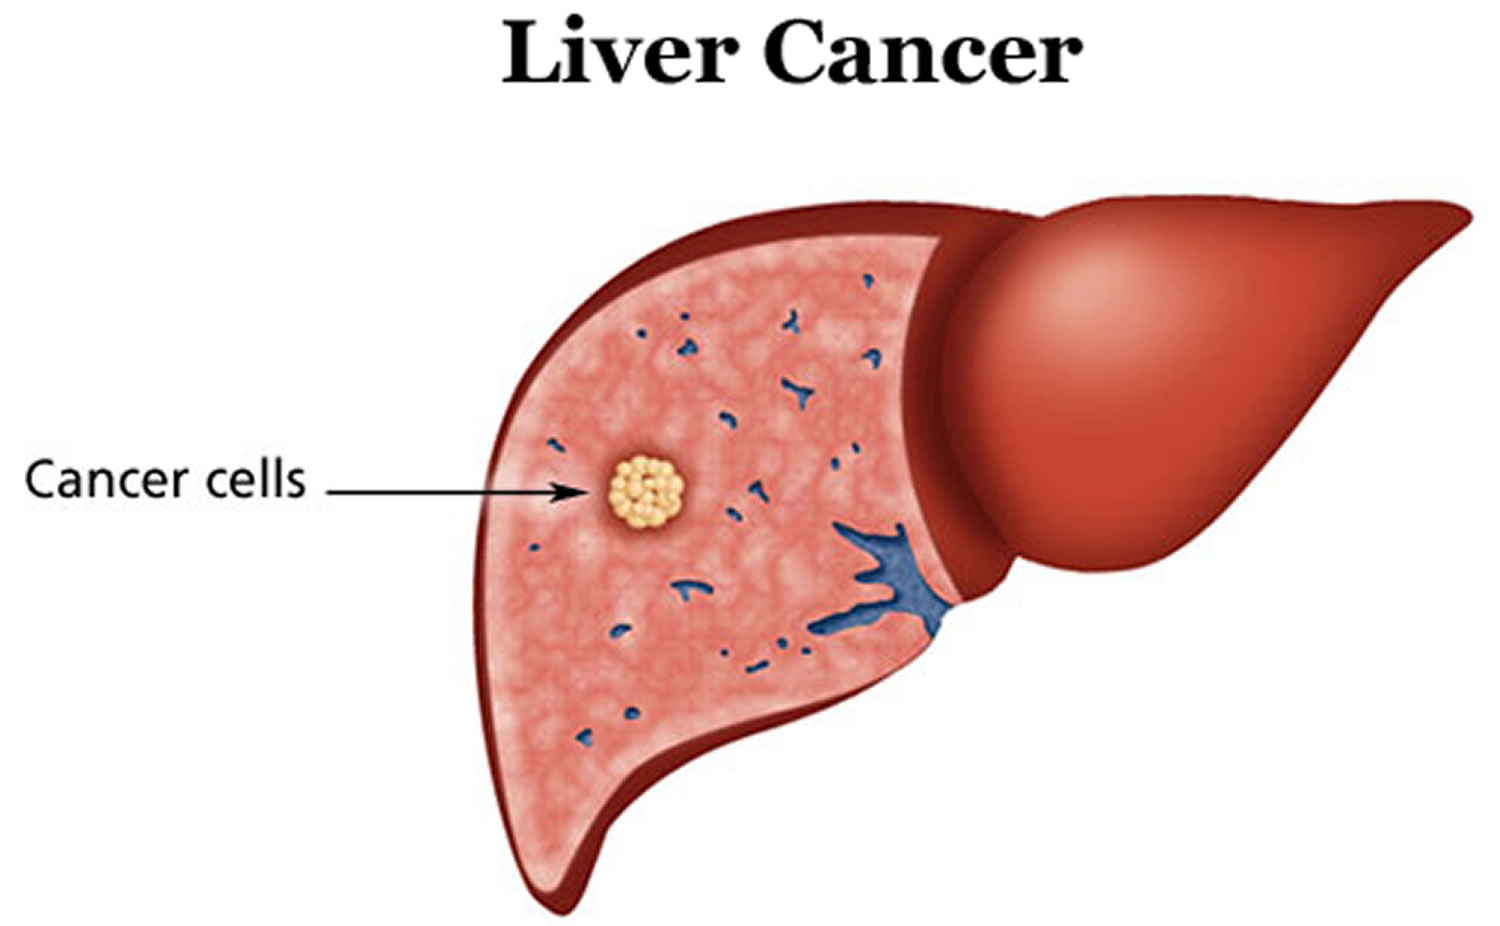 Severe fatty liver disease boosts risk for liver cancer: study